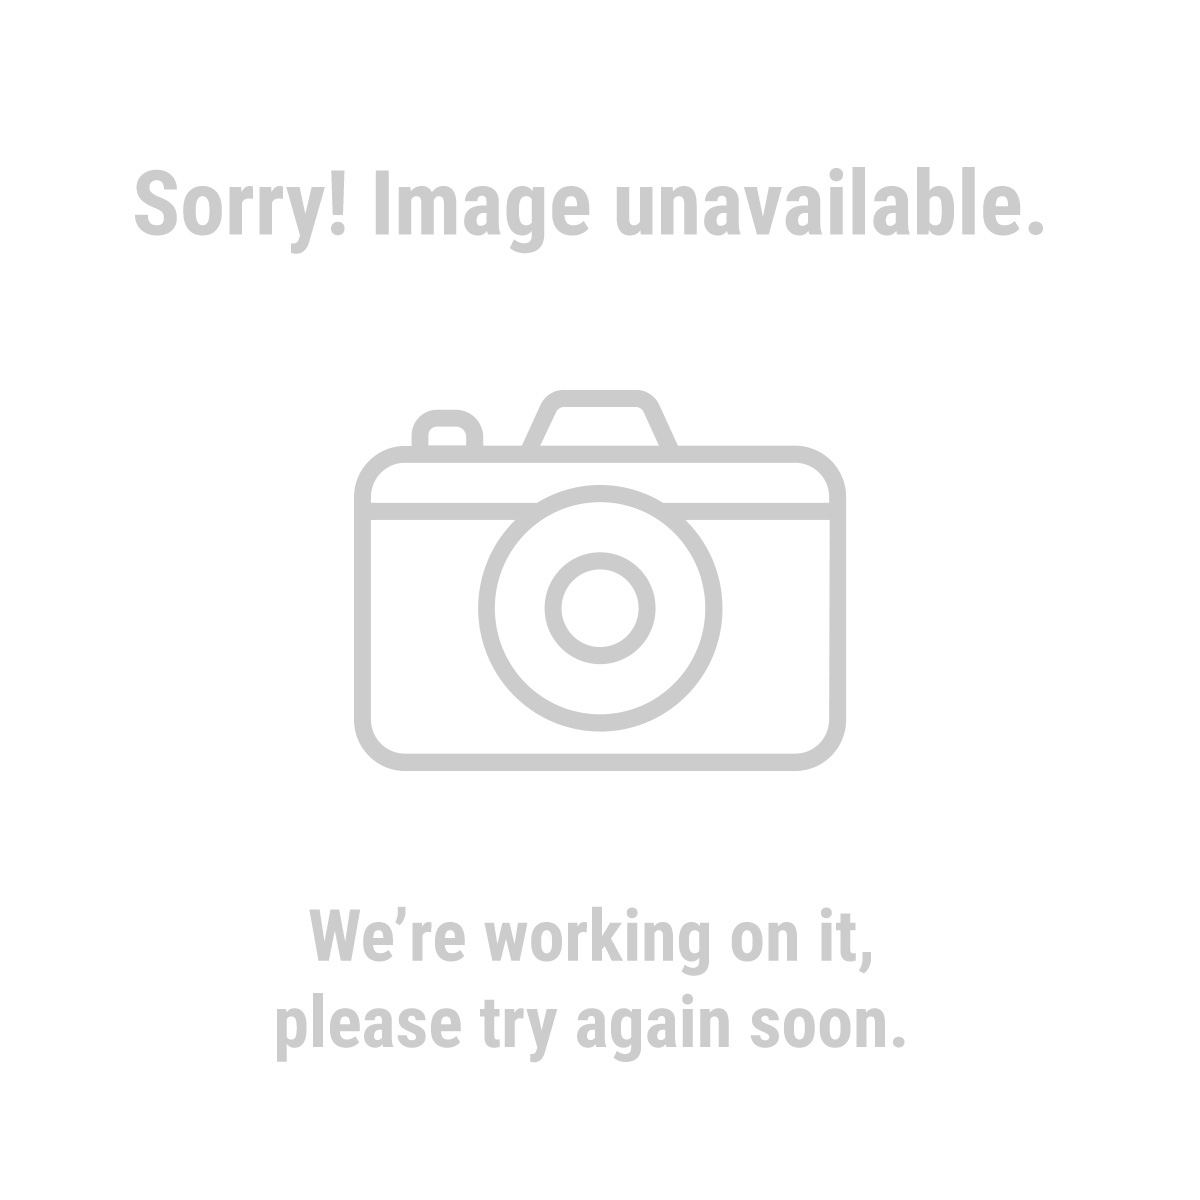 Pittsburgh Automotive 62769 1100 lb. Electric Hoist with Remote Control